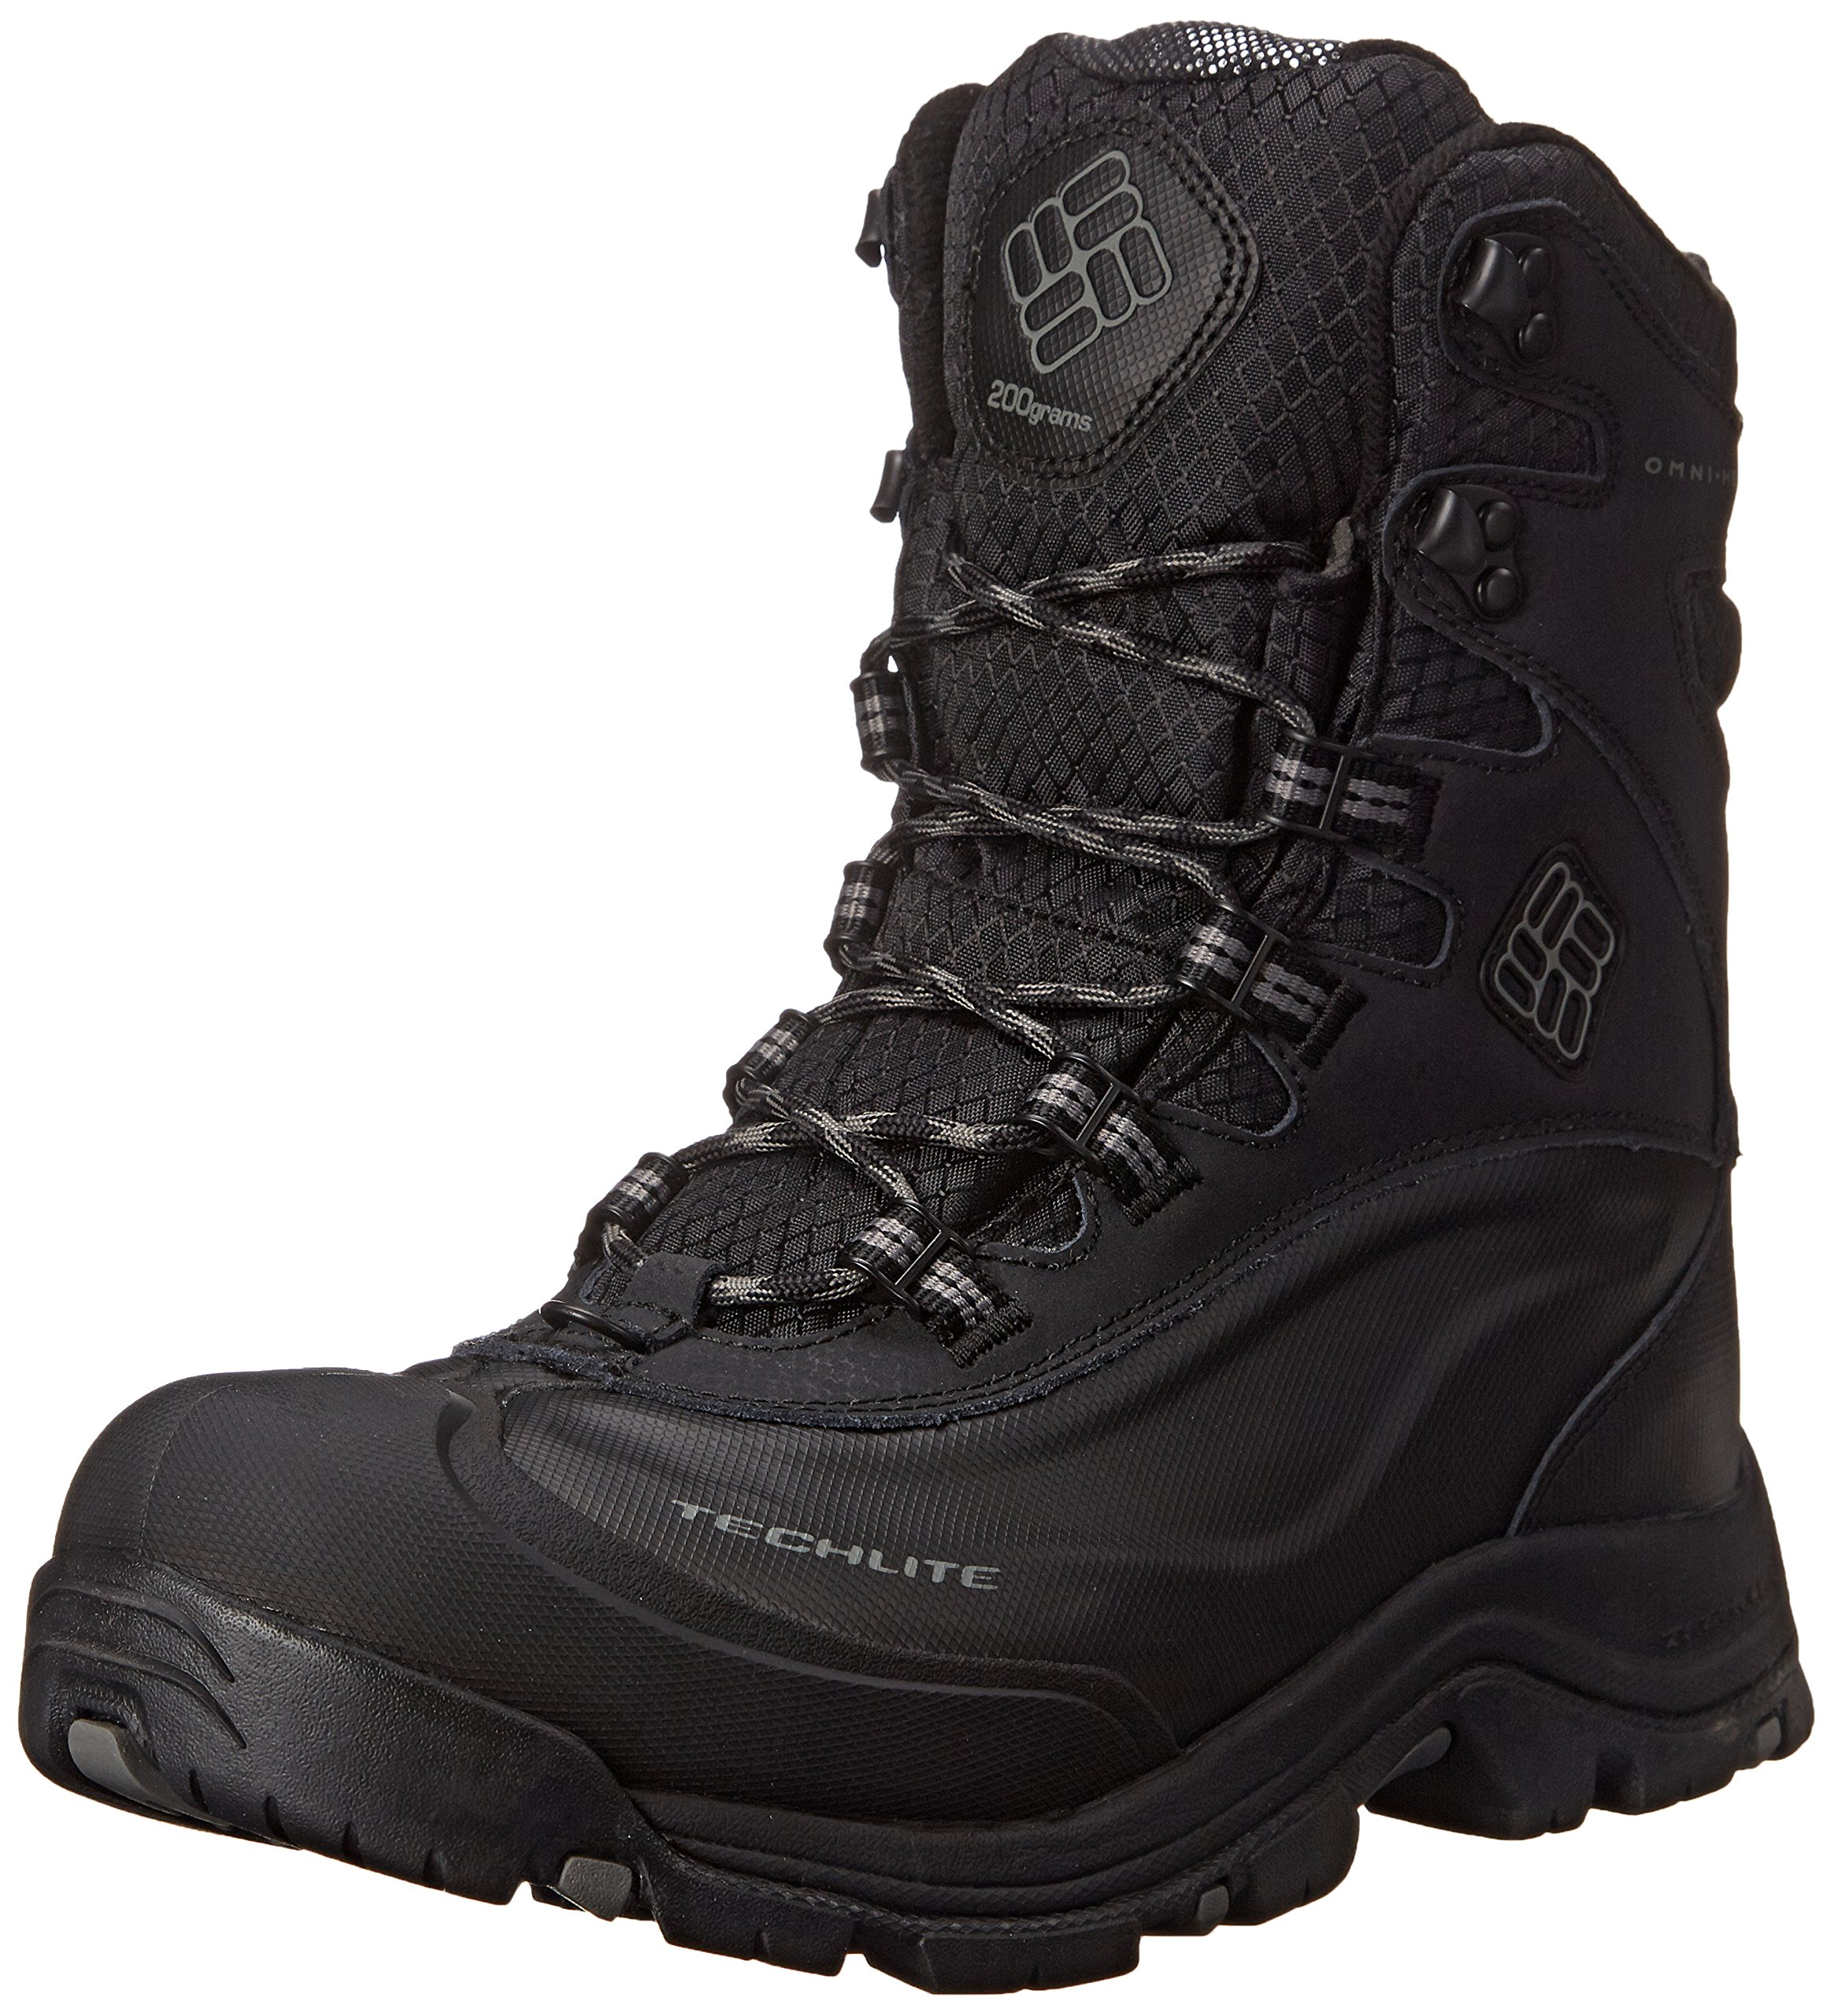 Columbia Men's Bugaboot Plus III Oh Wide Cold Weather Boot, Black/Charcoal, 9.5 EE US